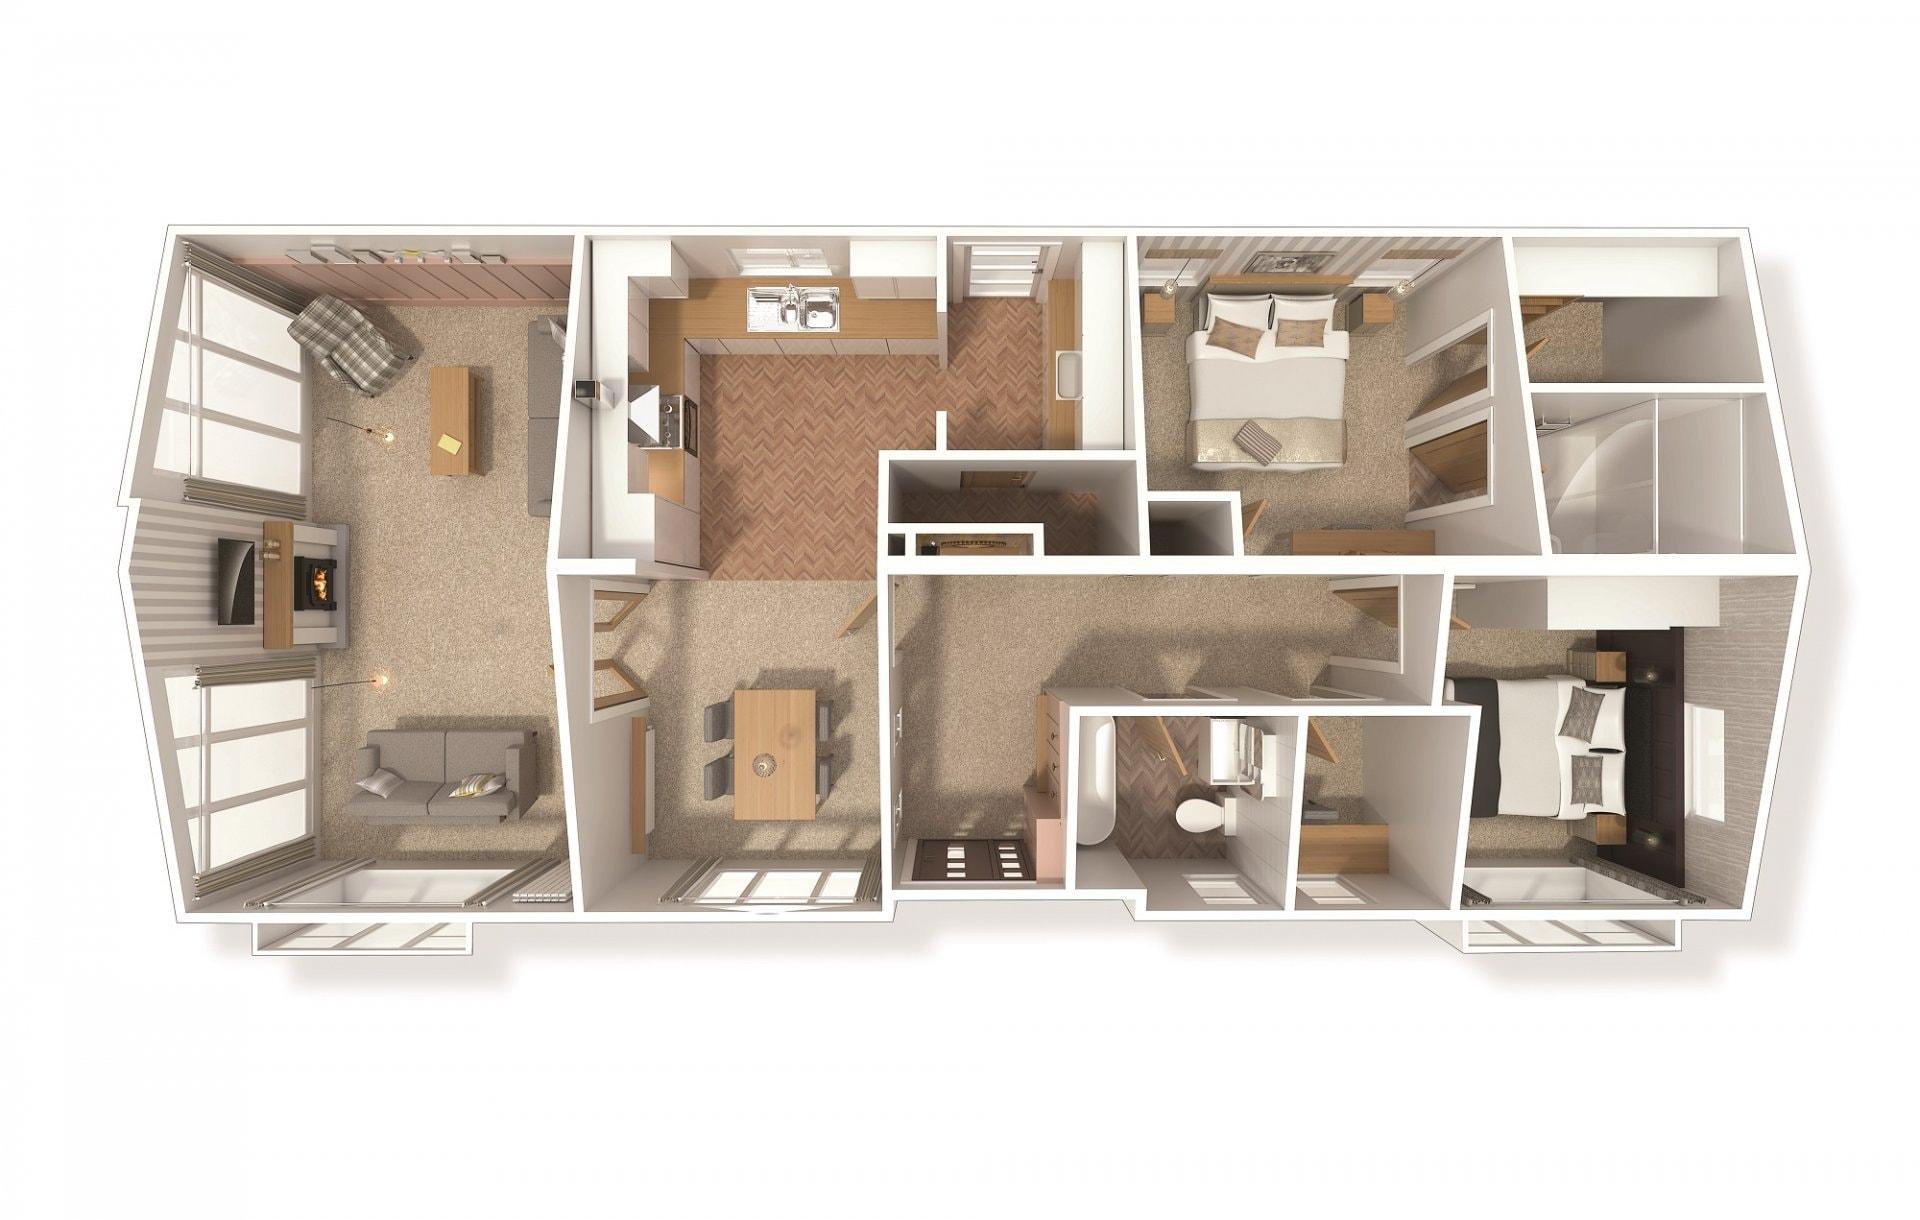 Illustrated is a 50' x 22' floorplan. You can make changes to the plan to suit your requirements.